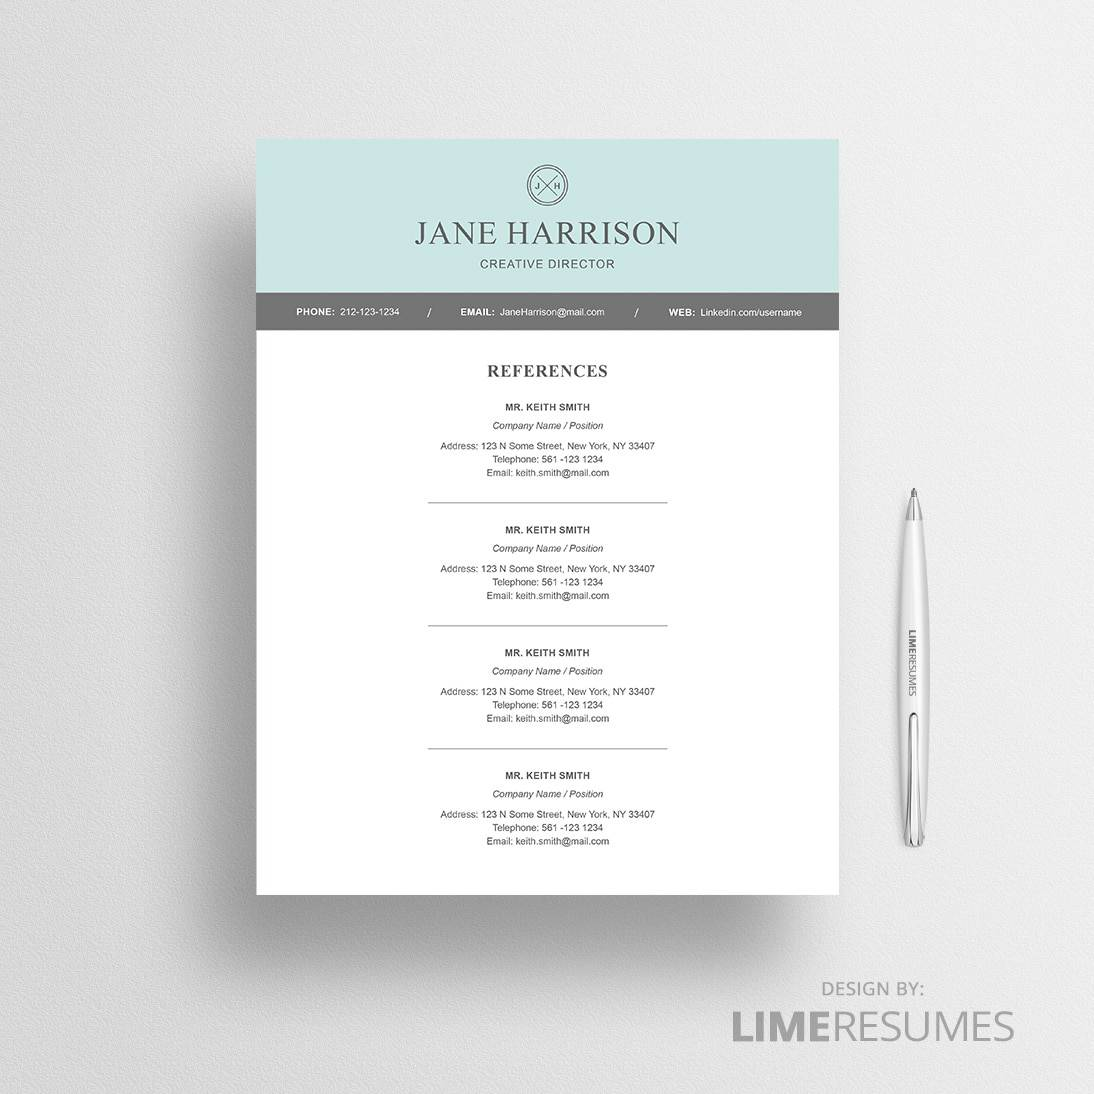 examples of references on a resumes